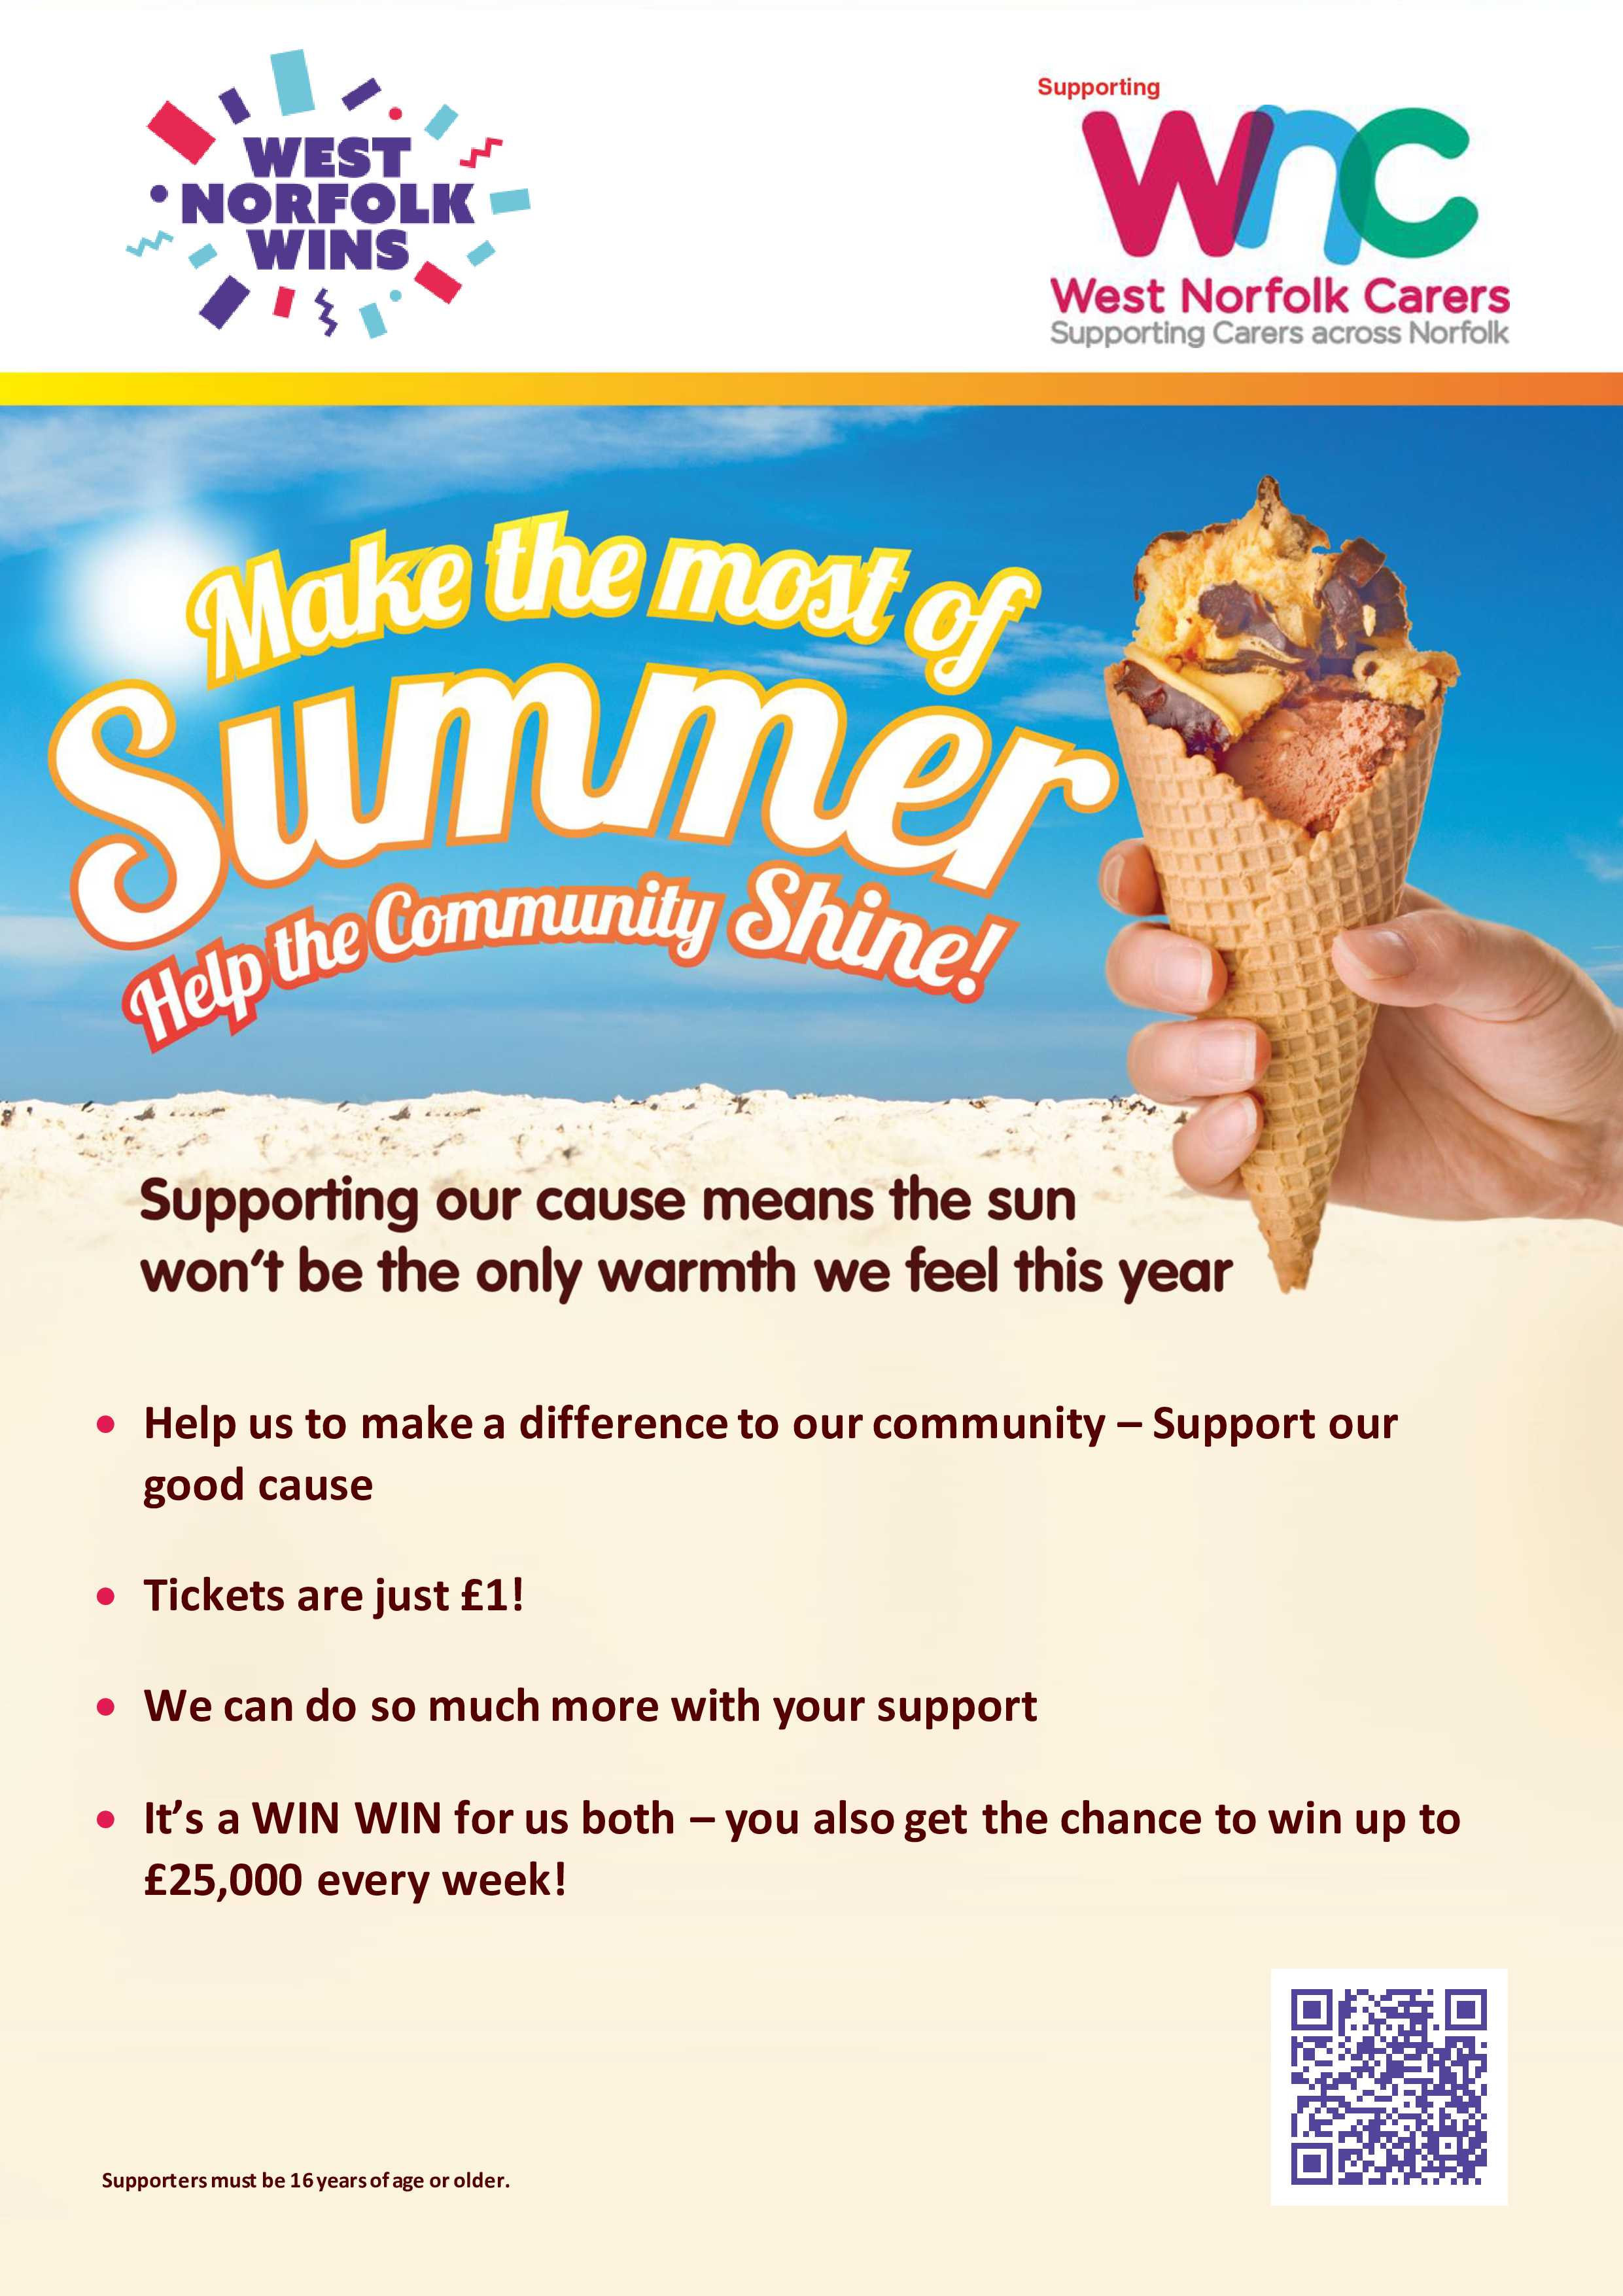 help-our-cause-shine-this-summer - image.jpg